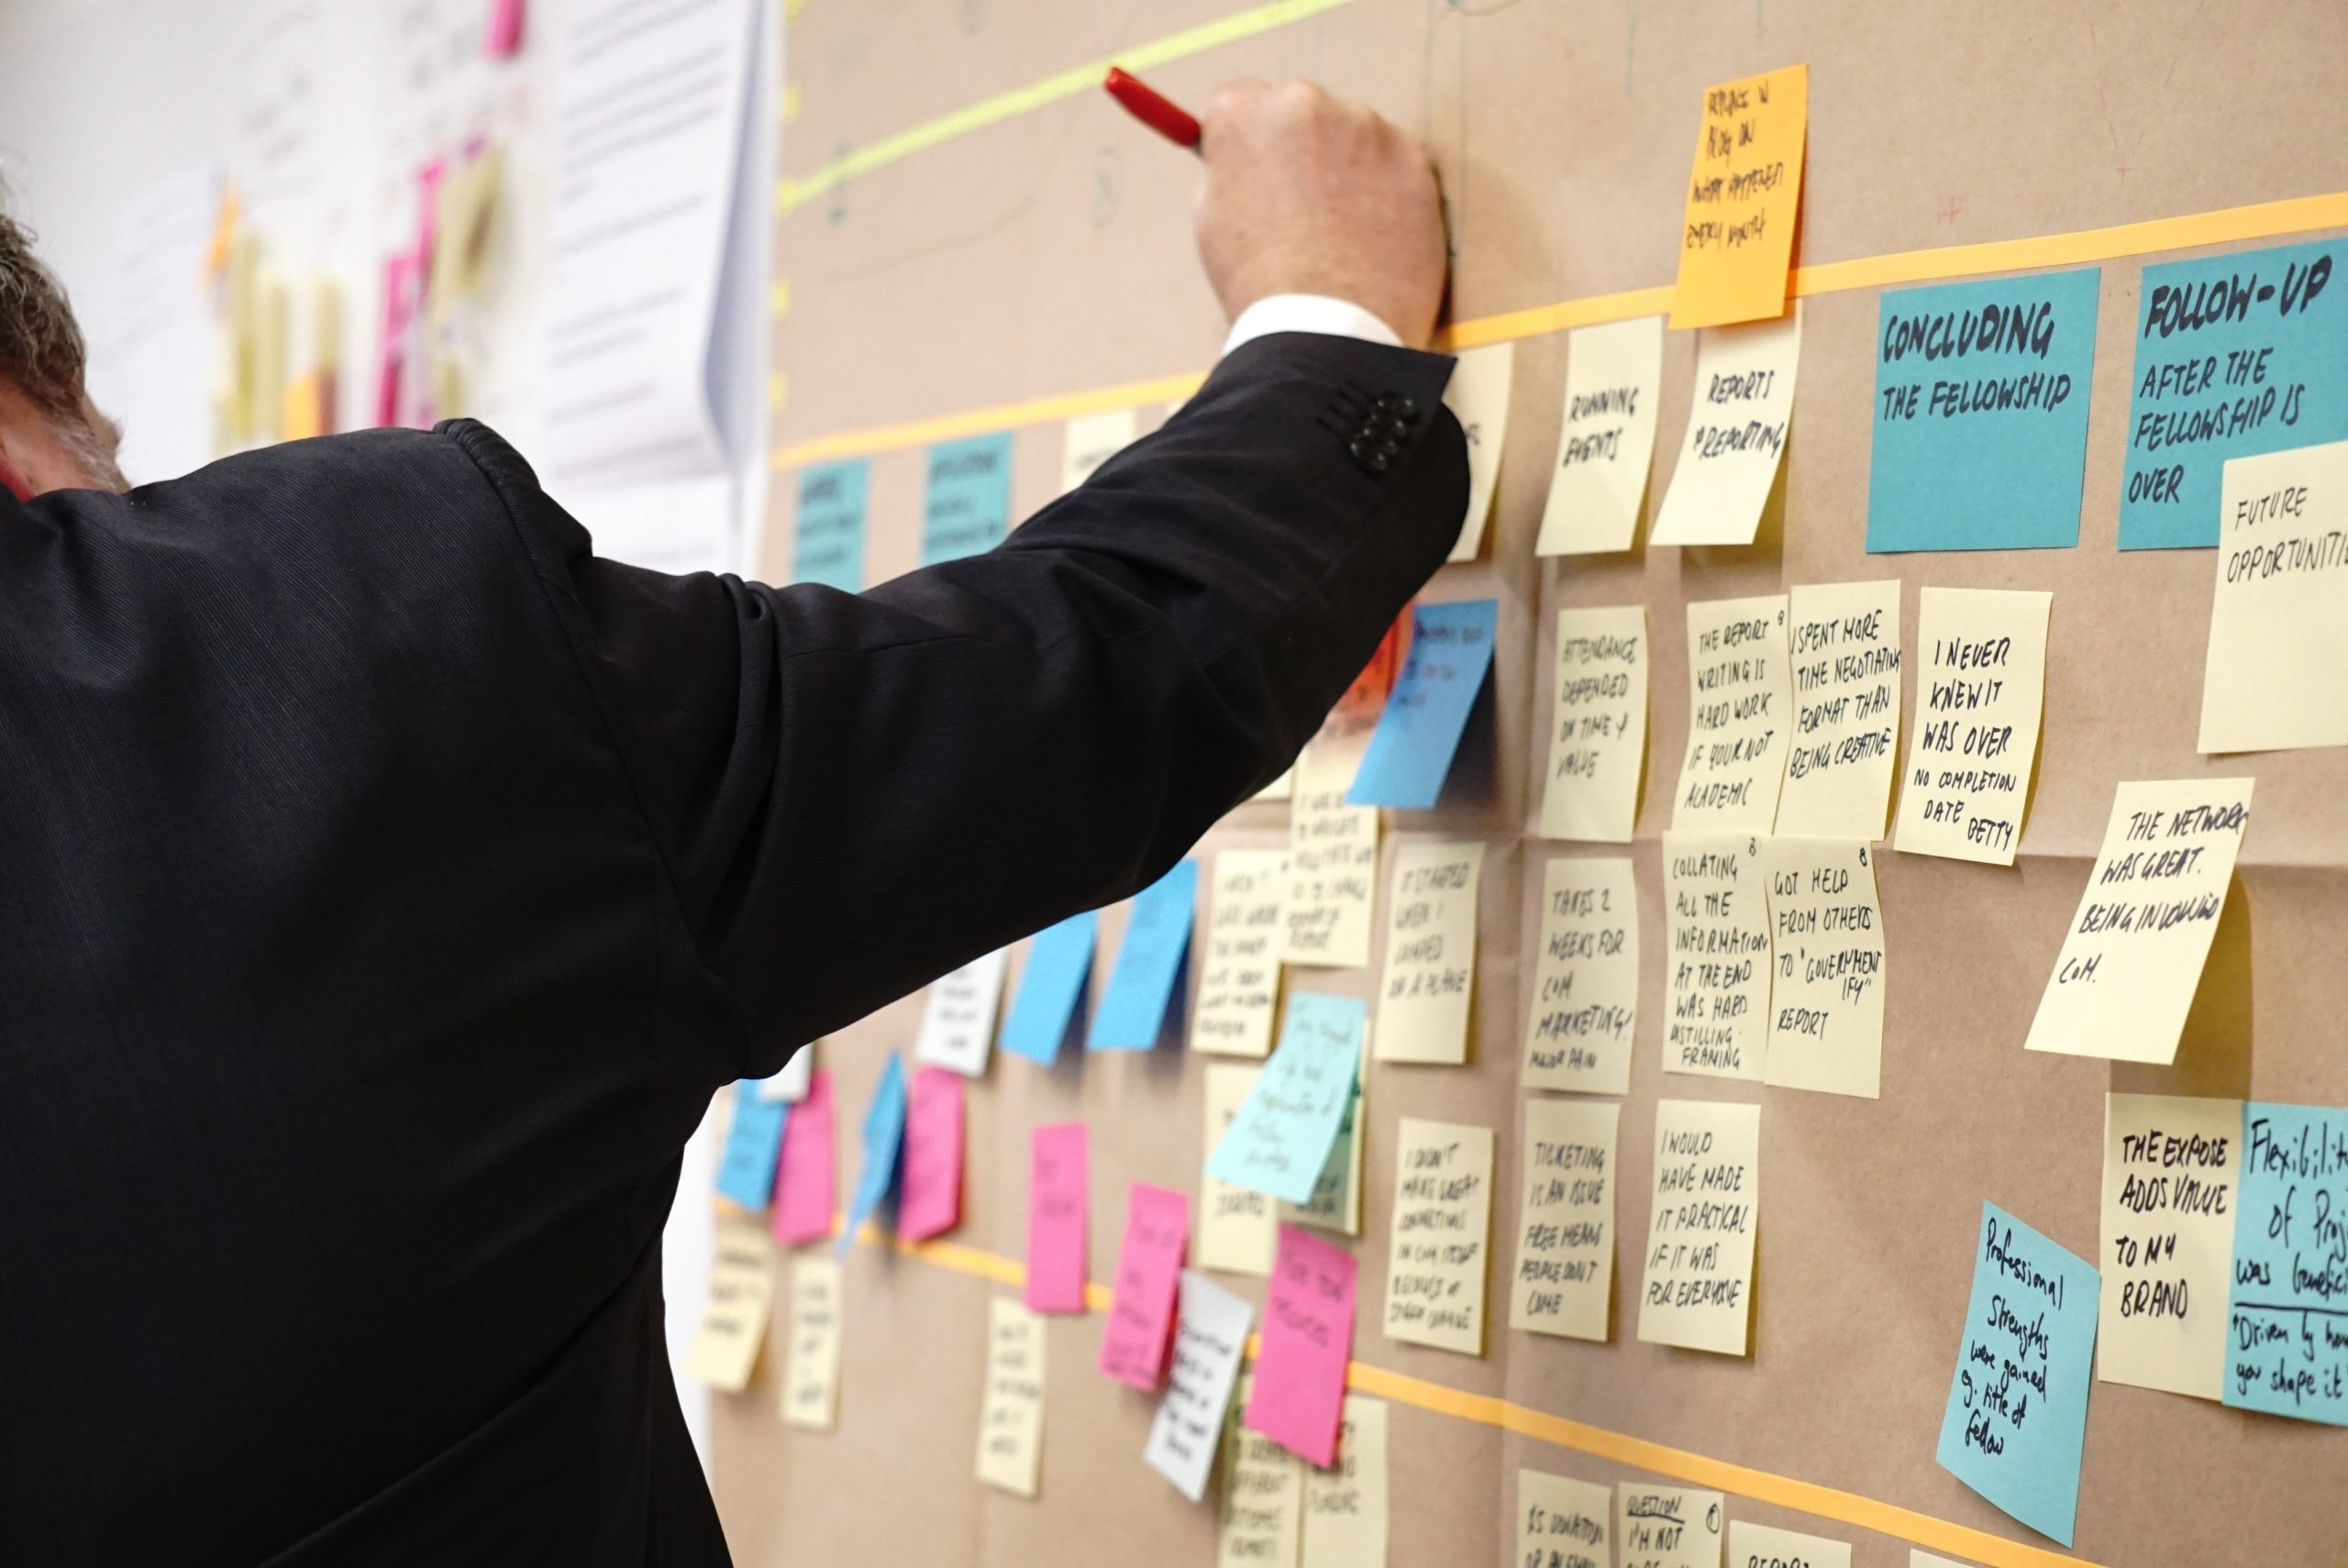 7 Pro Tips for Managing Employees More Efficiently